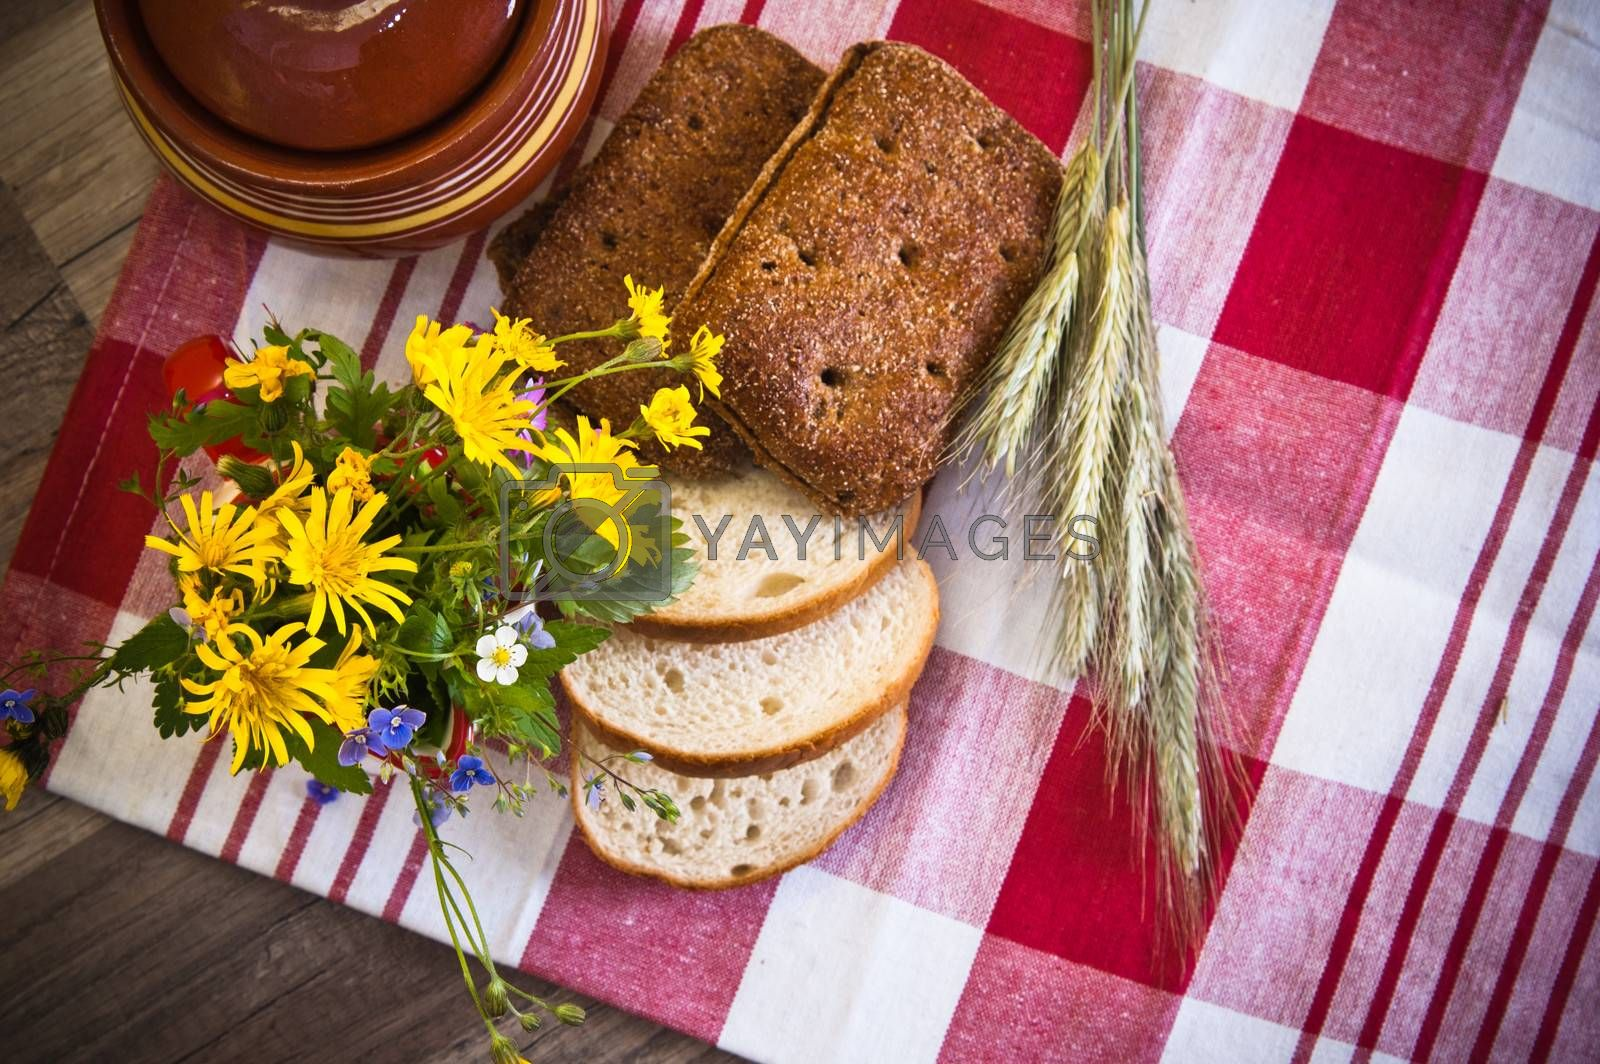 Still life with bread, flowers and pot